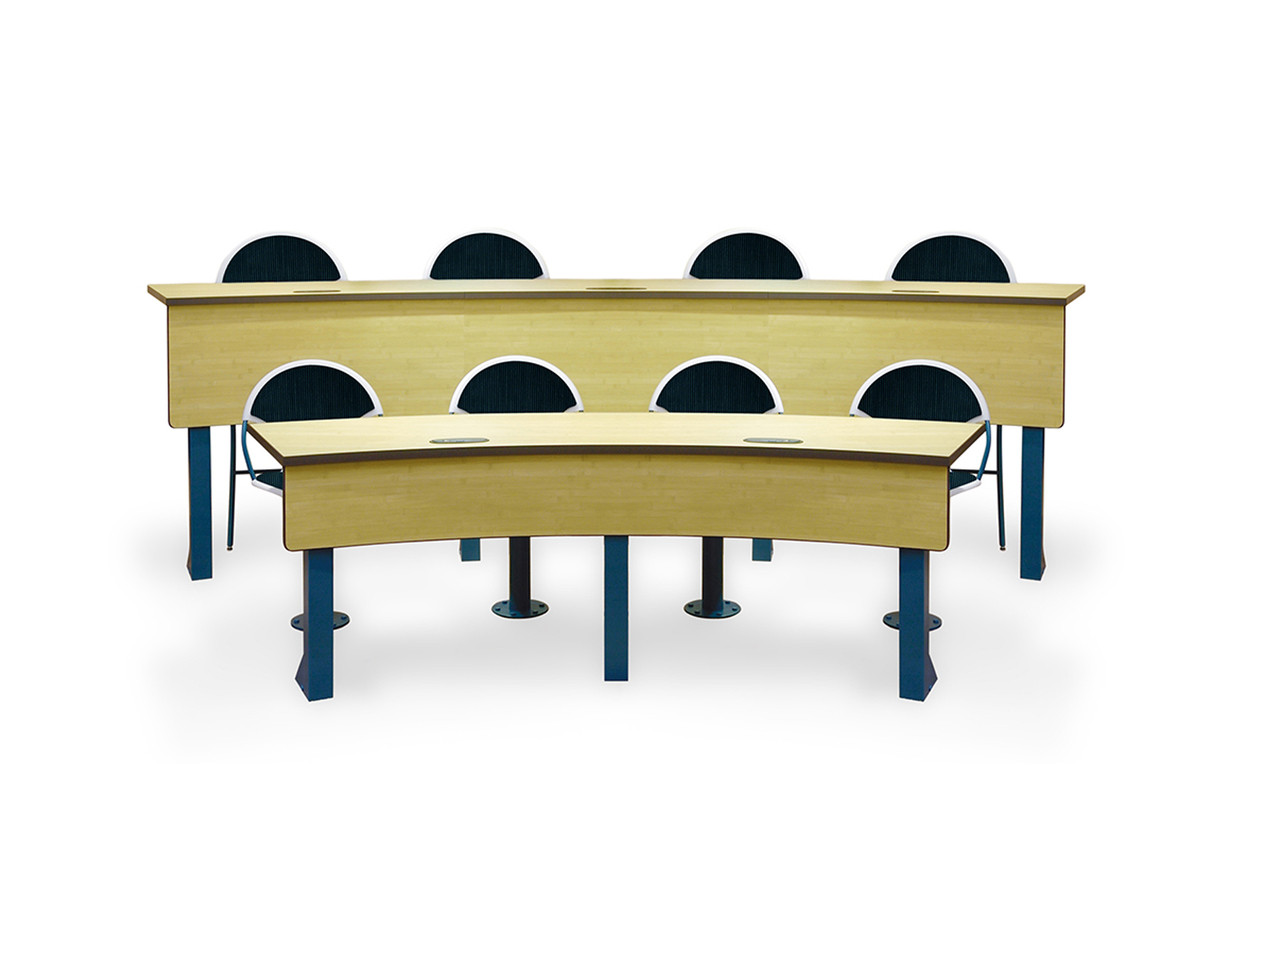 office sale wicked table classroom tables school creativity furniture top desk desks modern manufacturers for